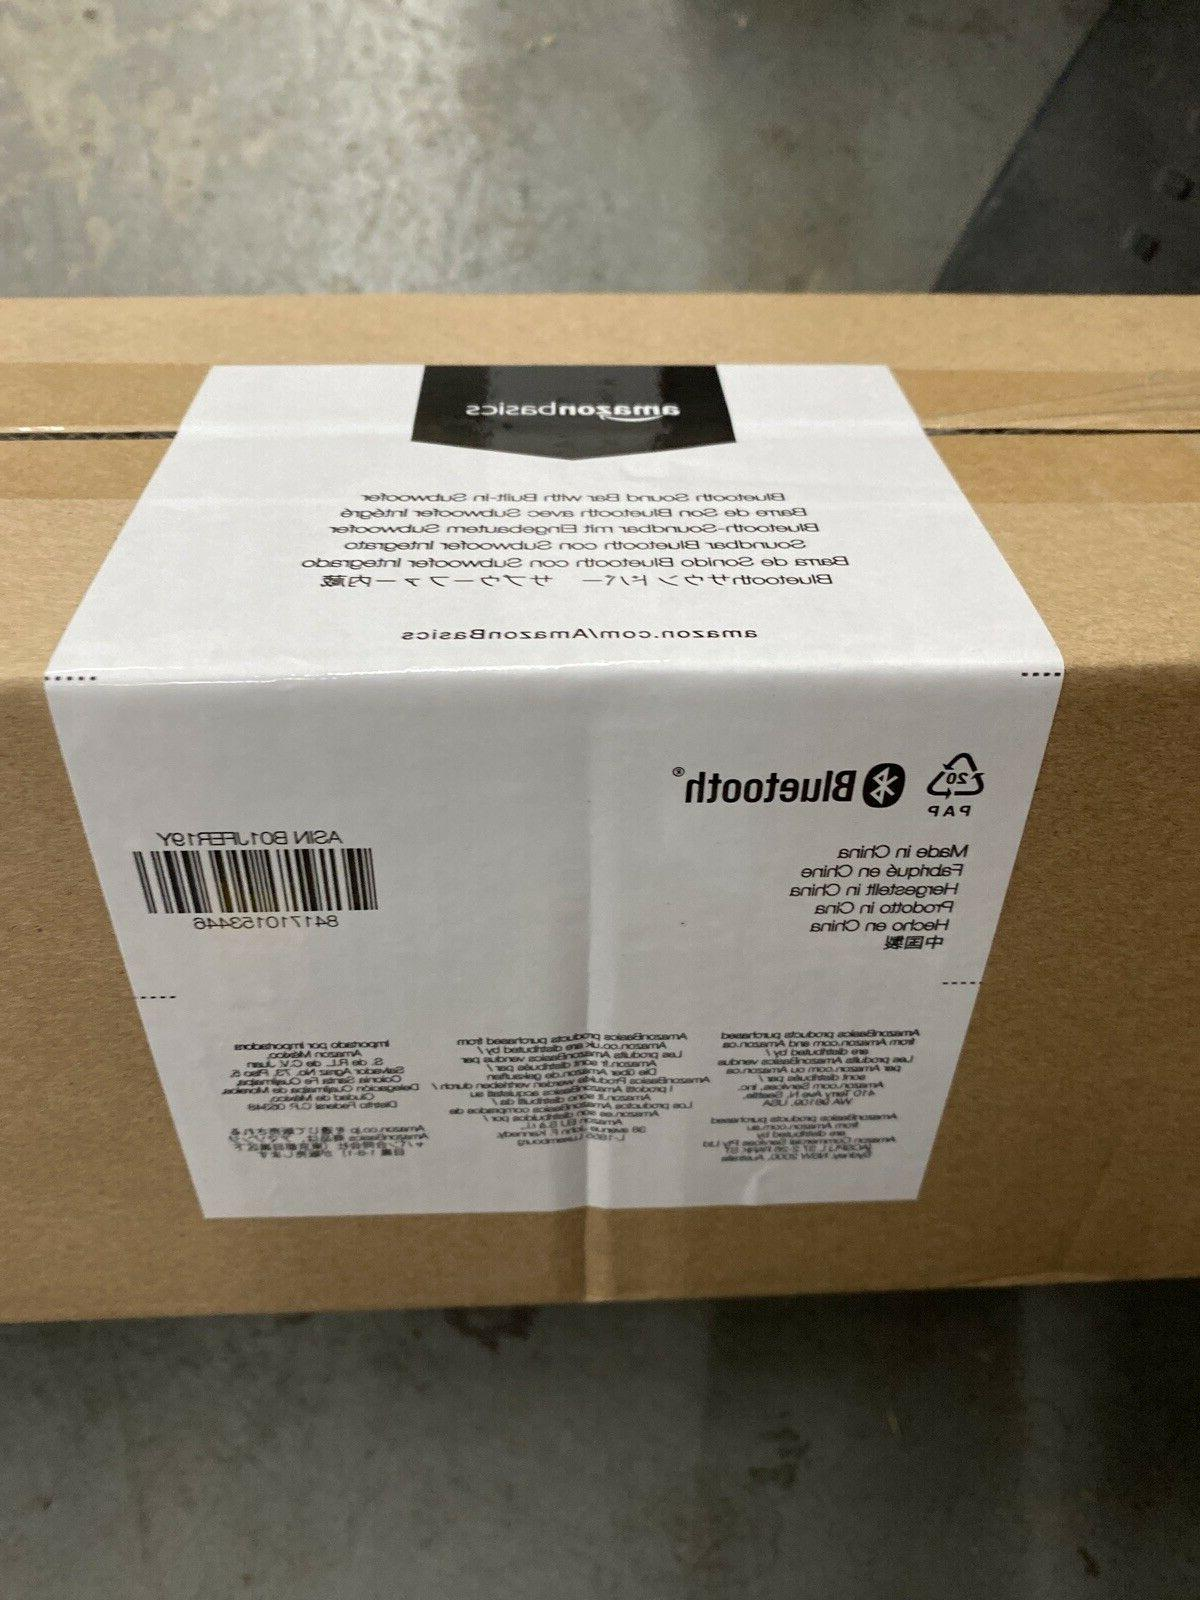 AmazonBasics SB210 2.1 Channel with Built-In